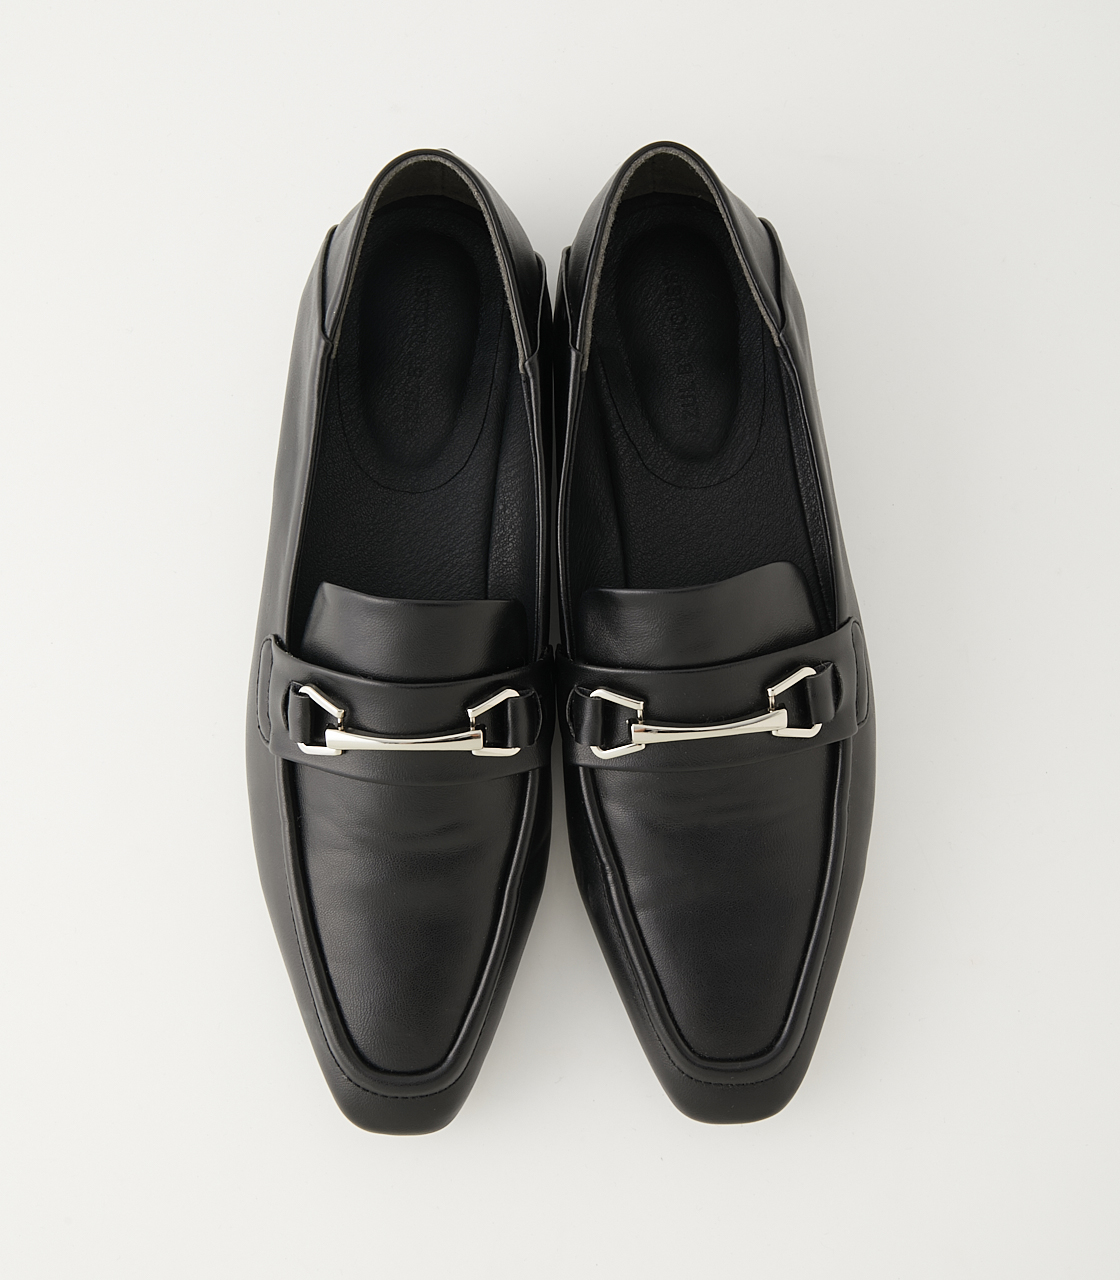 BABOUCHE LOAFER/バブーシュローファー 詳細画像 BLK 3